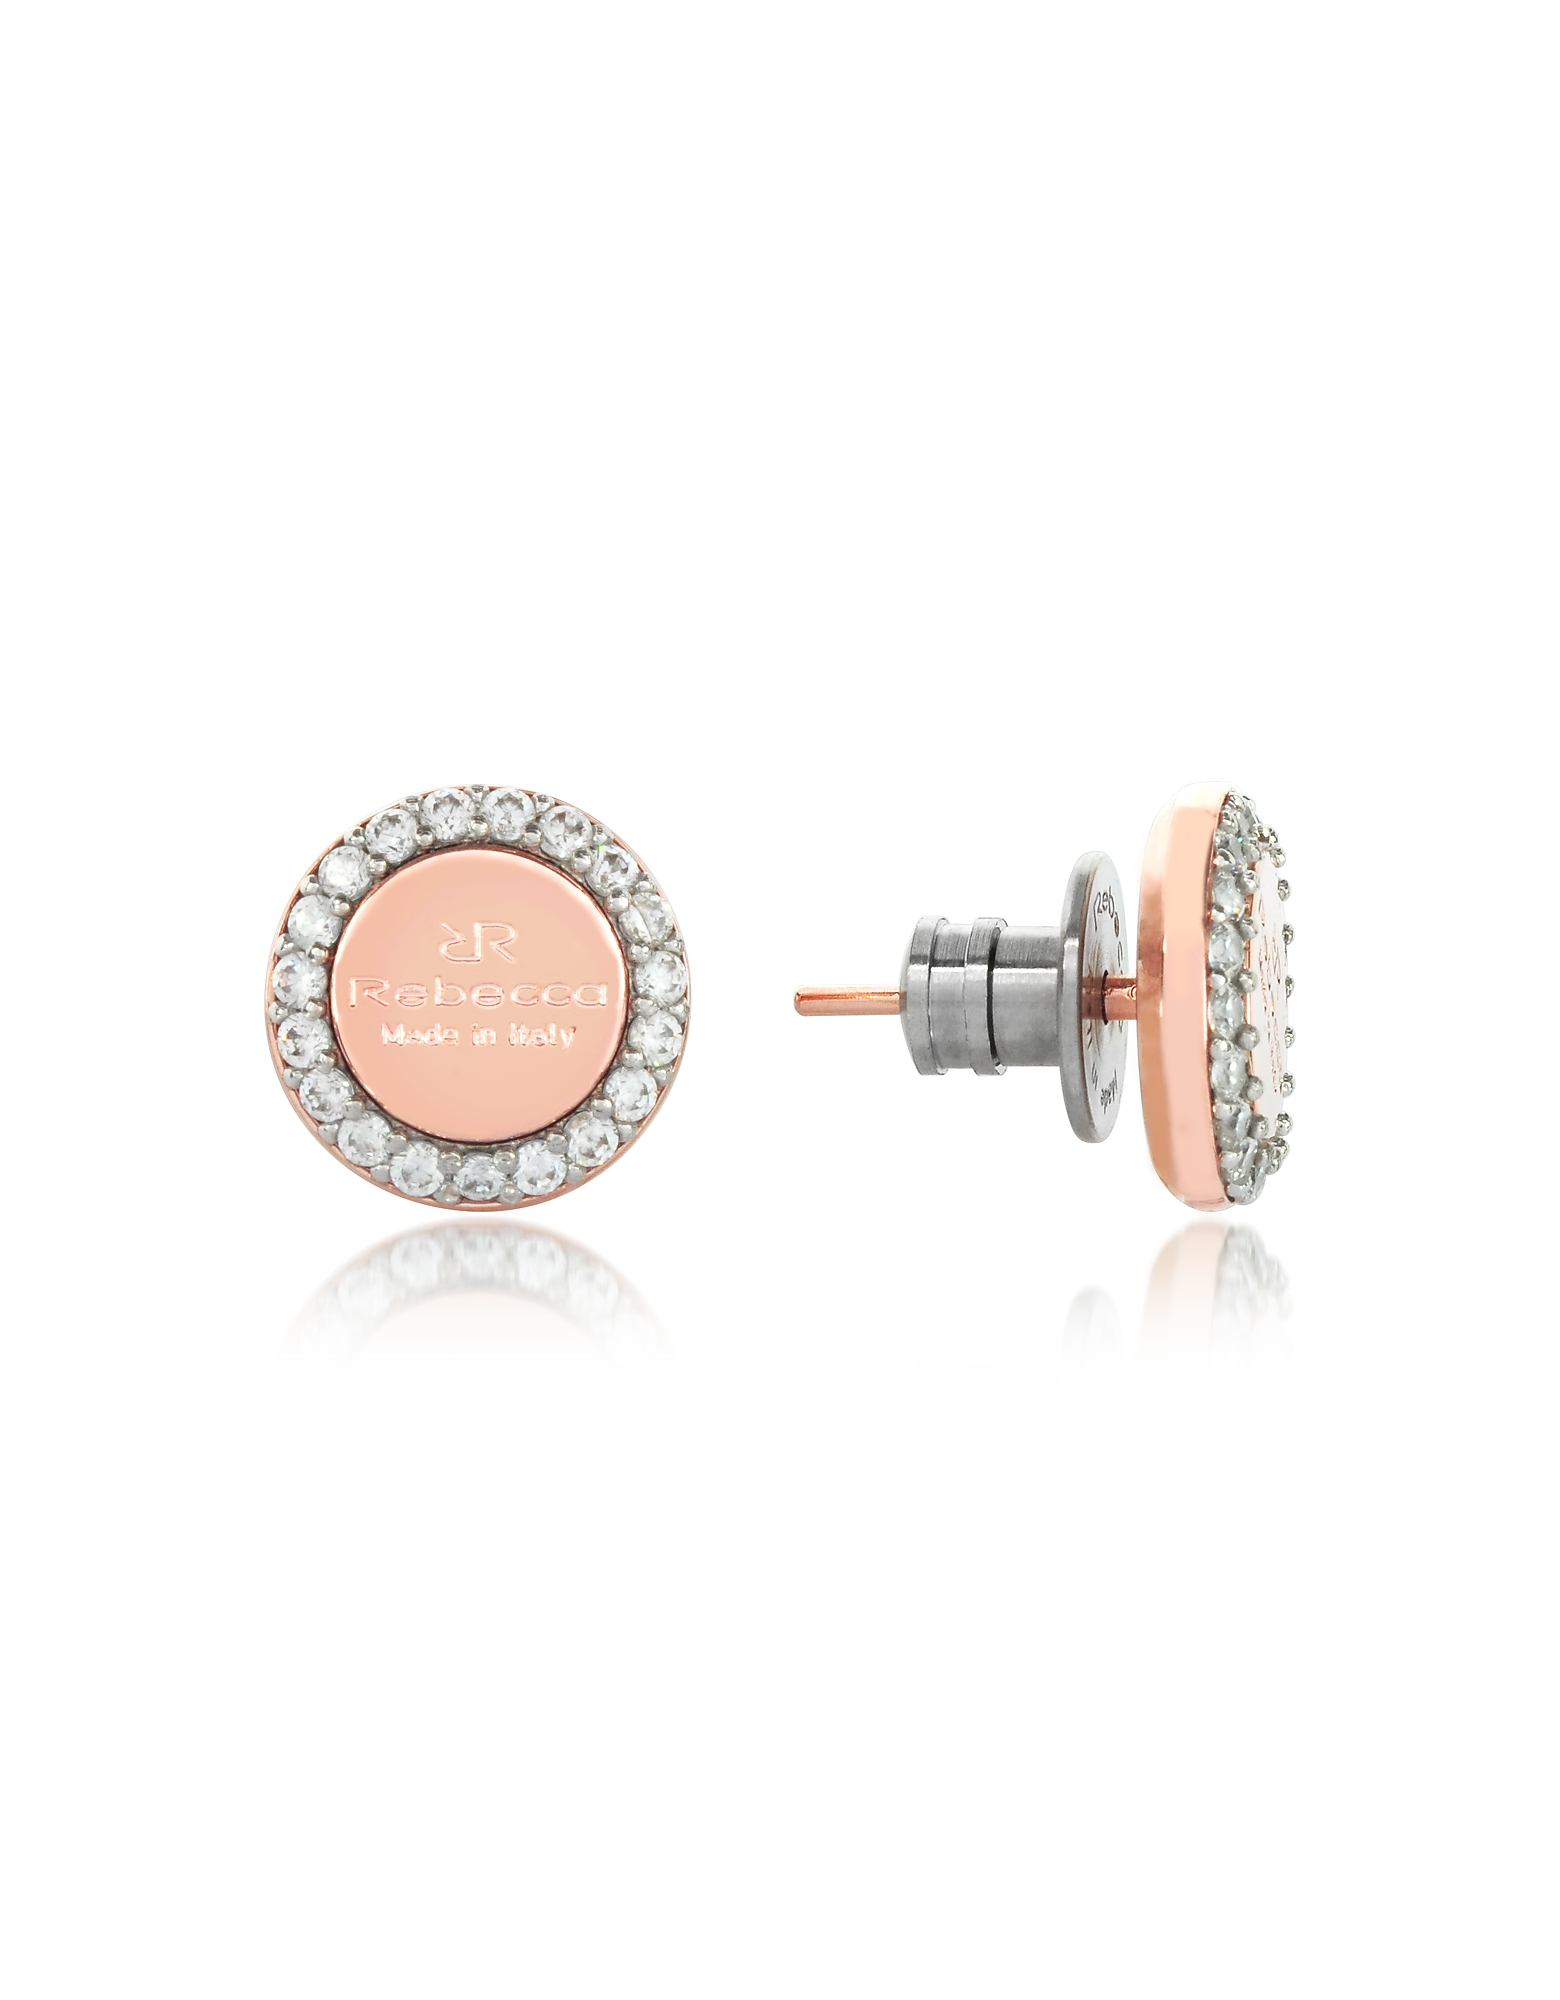 Rebecca Earrings, Boulevard Stone Rose Gold Over Bronze Stud Earrings w/Stones